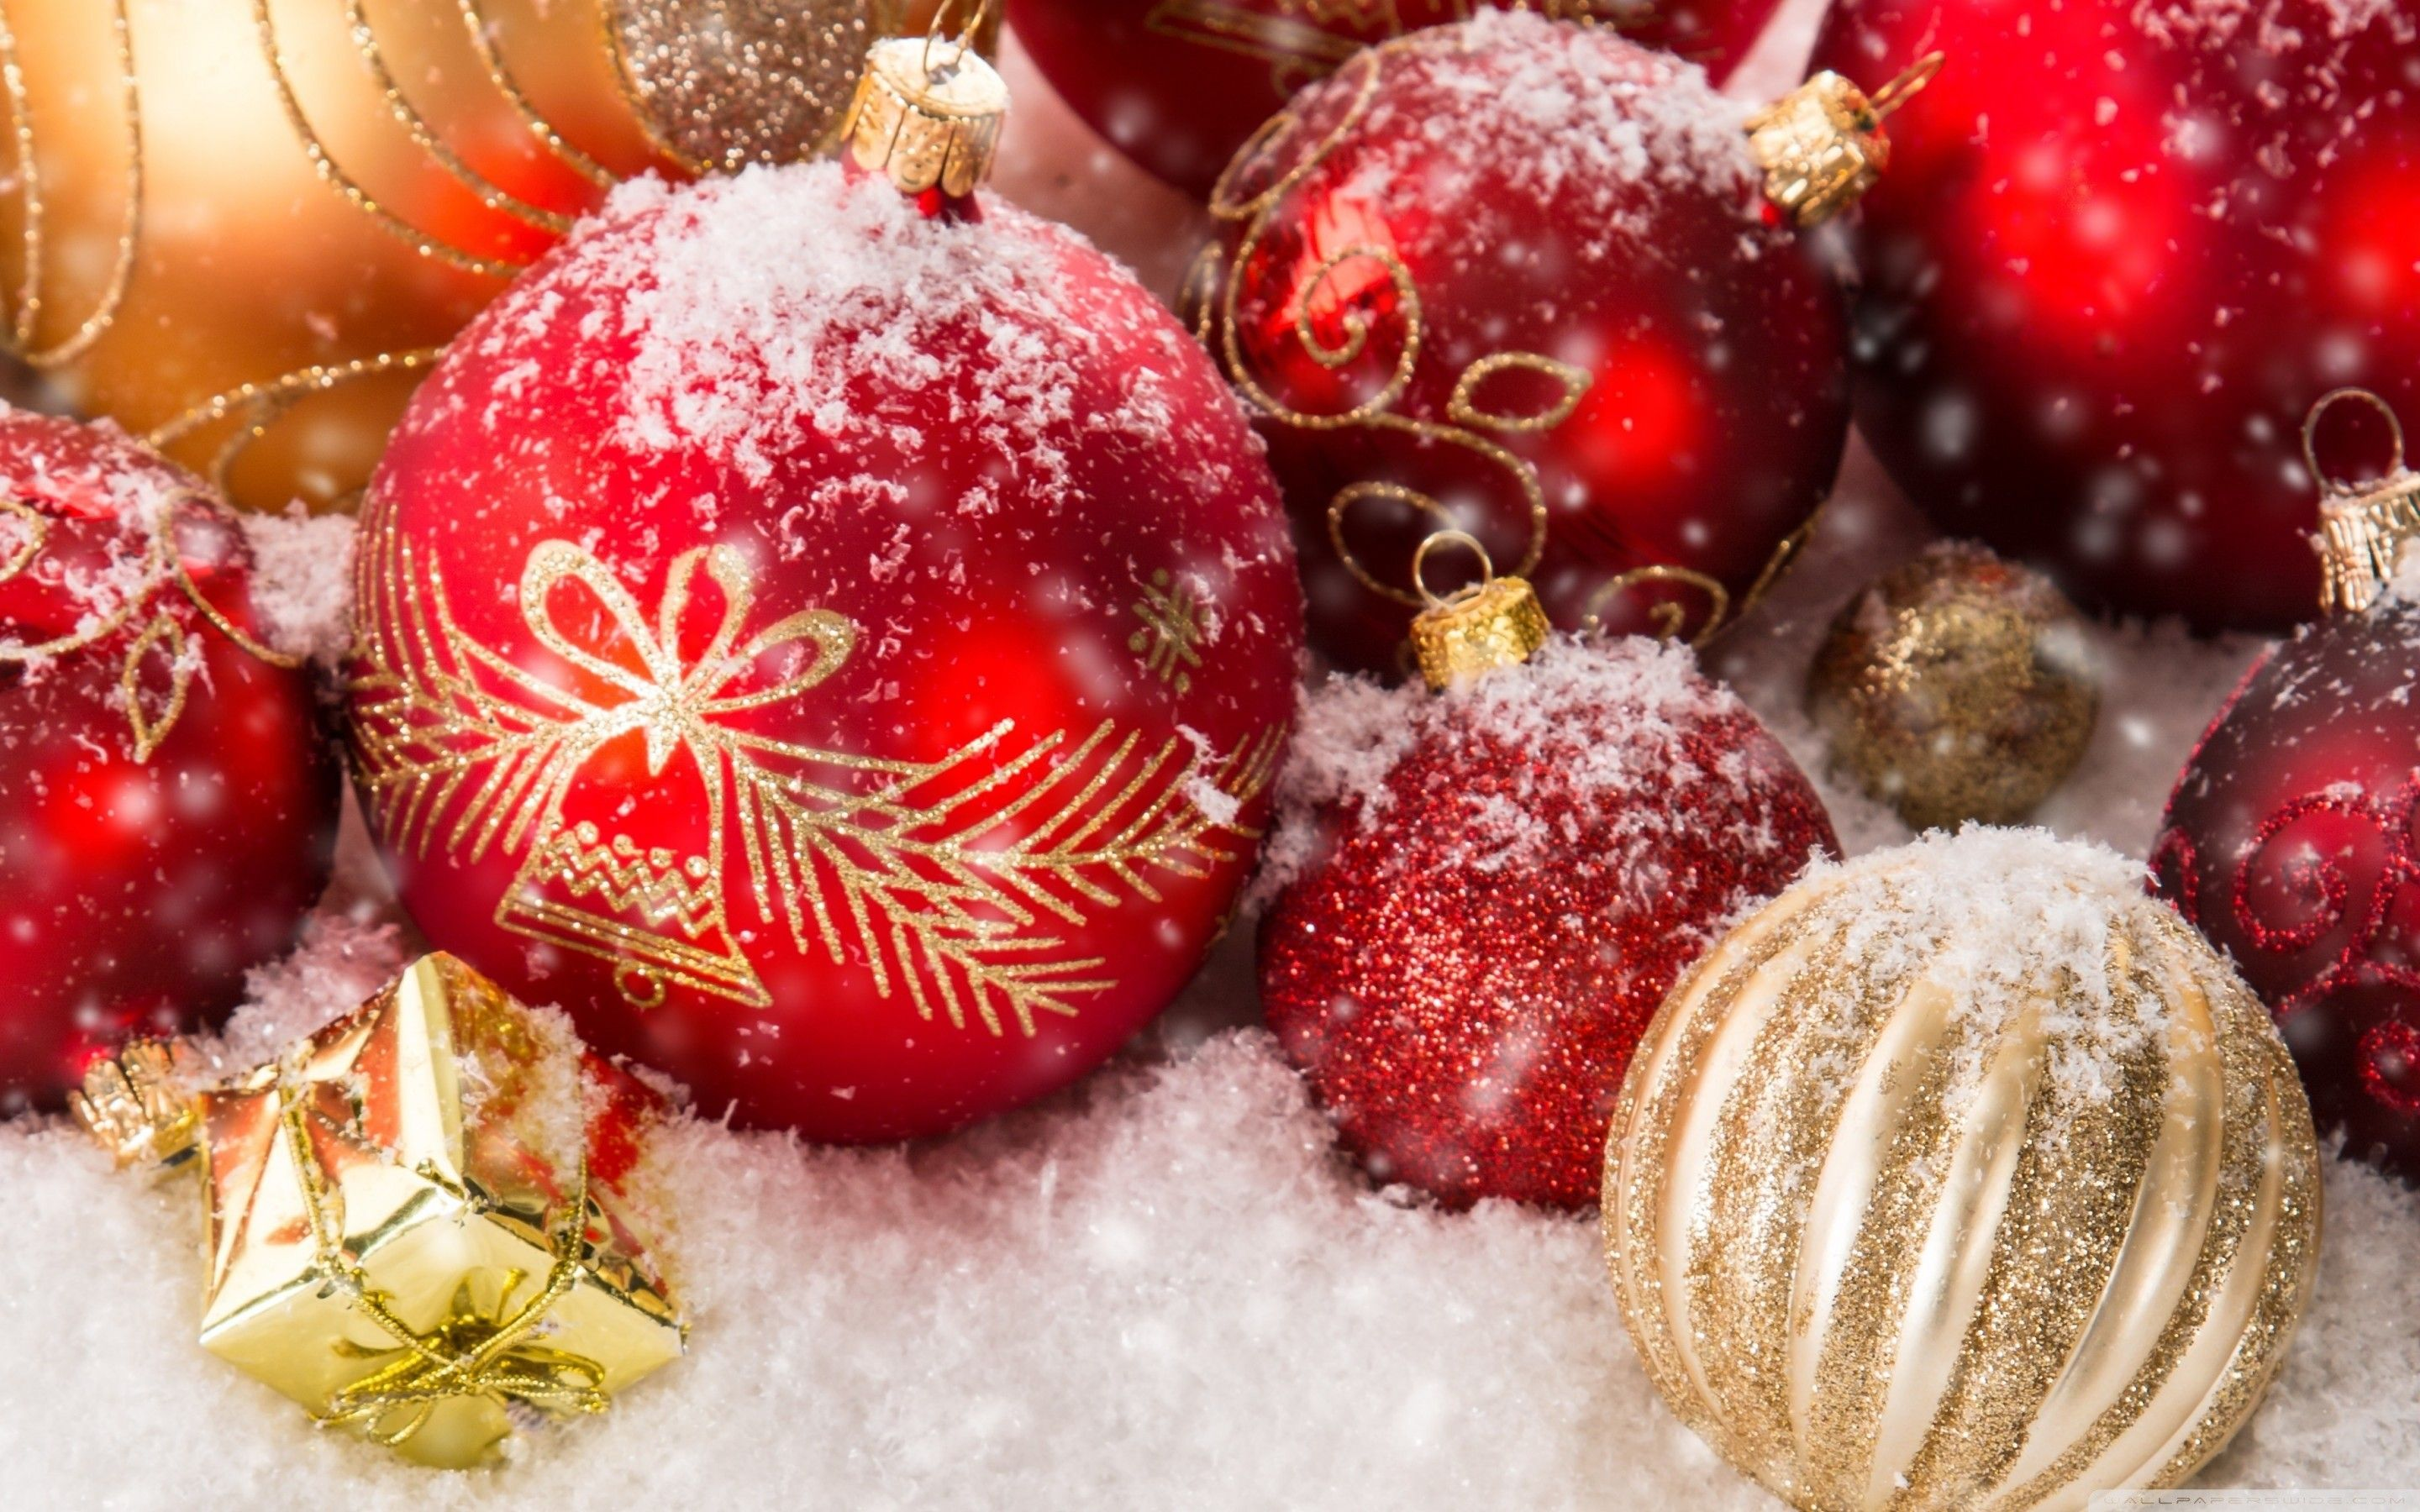 2880x1800 Pictures Christmas Wallpapers Hd Hd Wallpapers High Definition Amazing Cool D Wallpaper Iphone Christmas Christmas Wallpaper Christmas Screen Savers